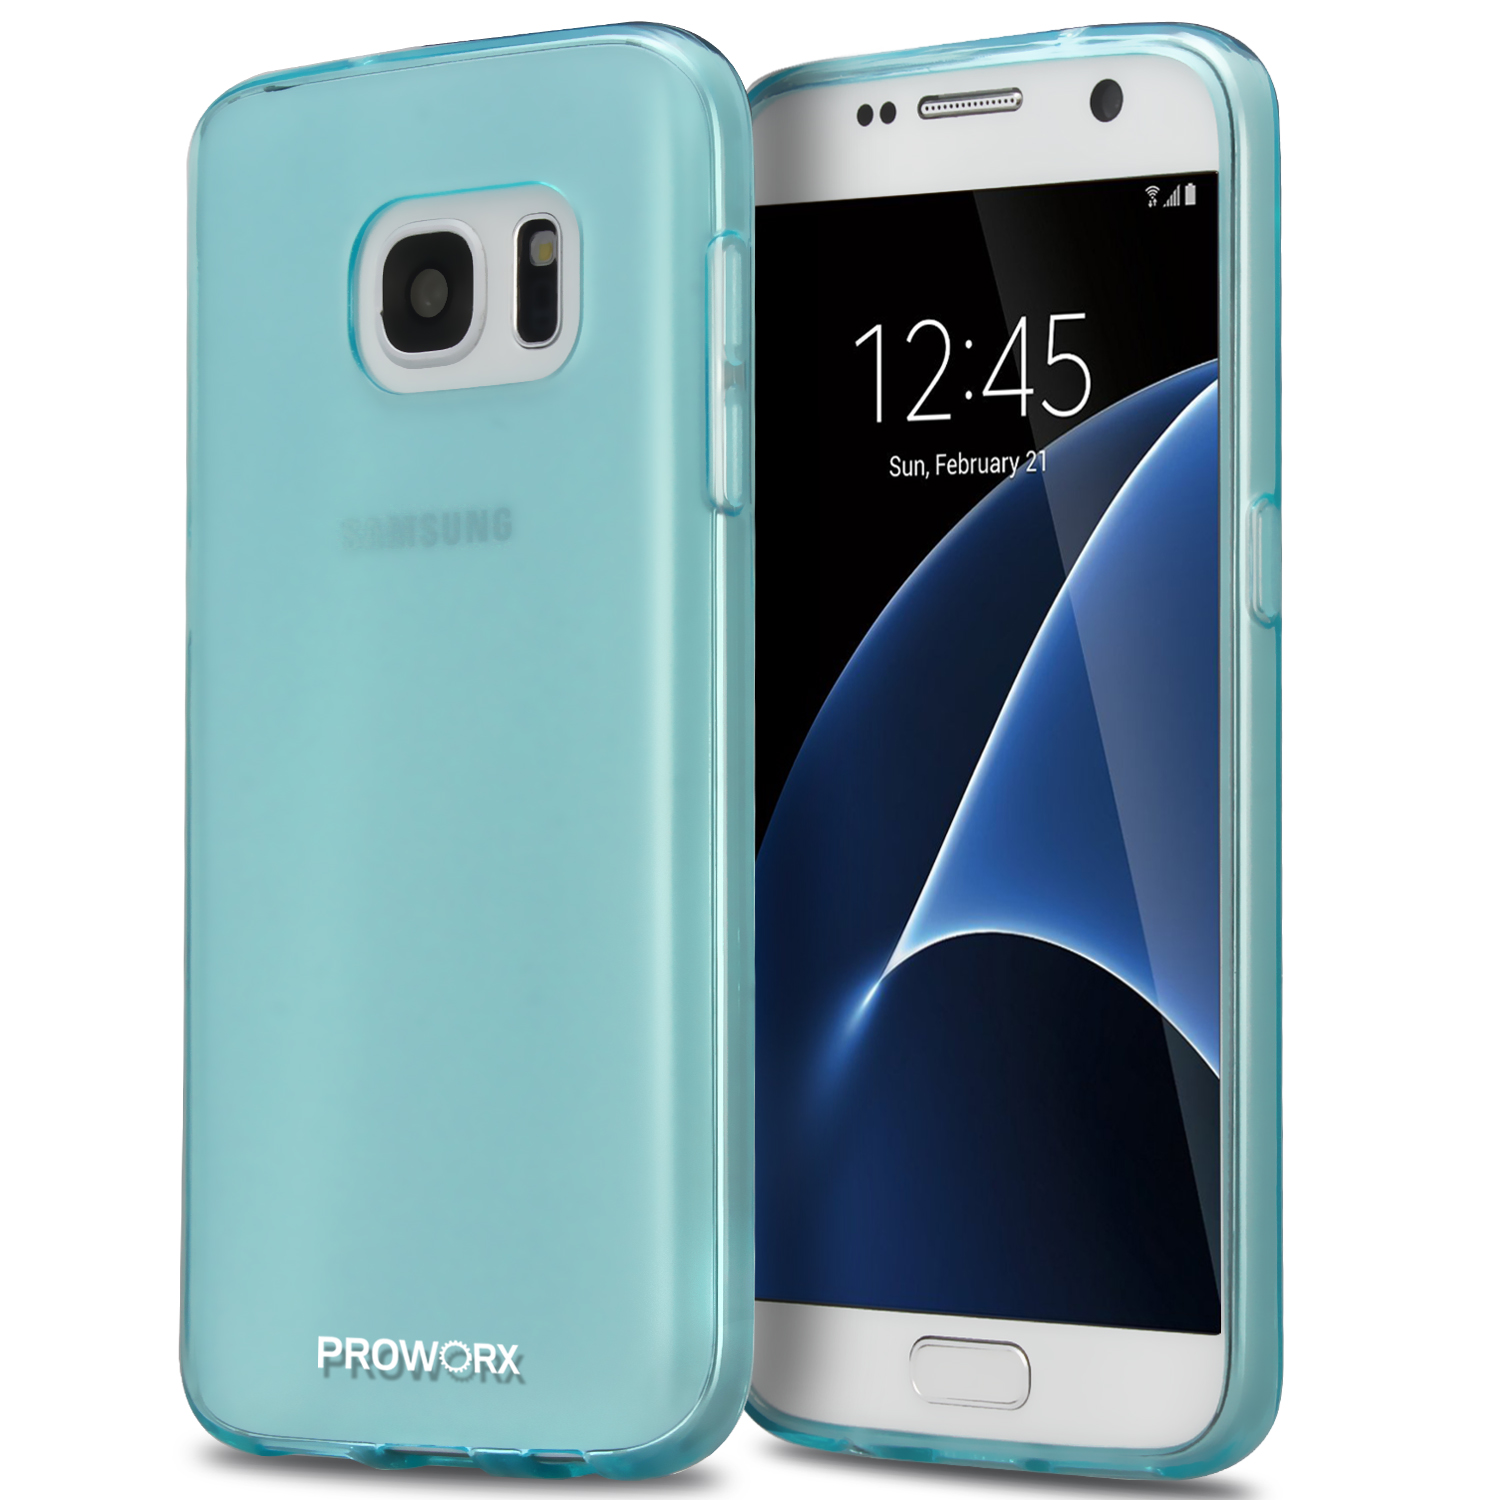 Samsung Galaxy S7 Mint Green ProWorx Ultra Slim Thin Scratch Resistant TPU Silicone Case Cover